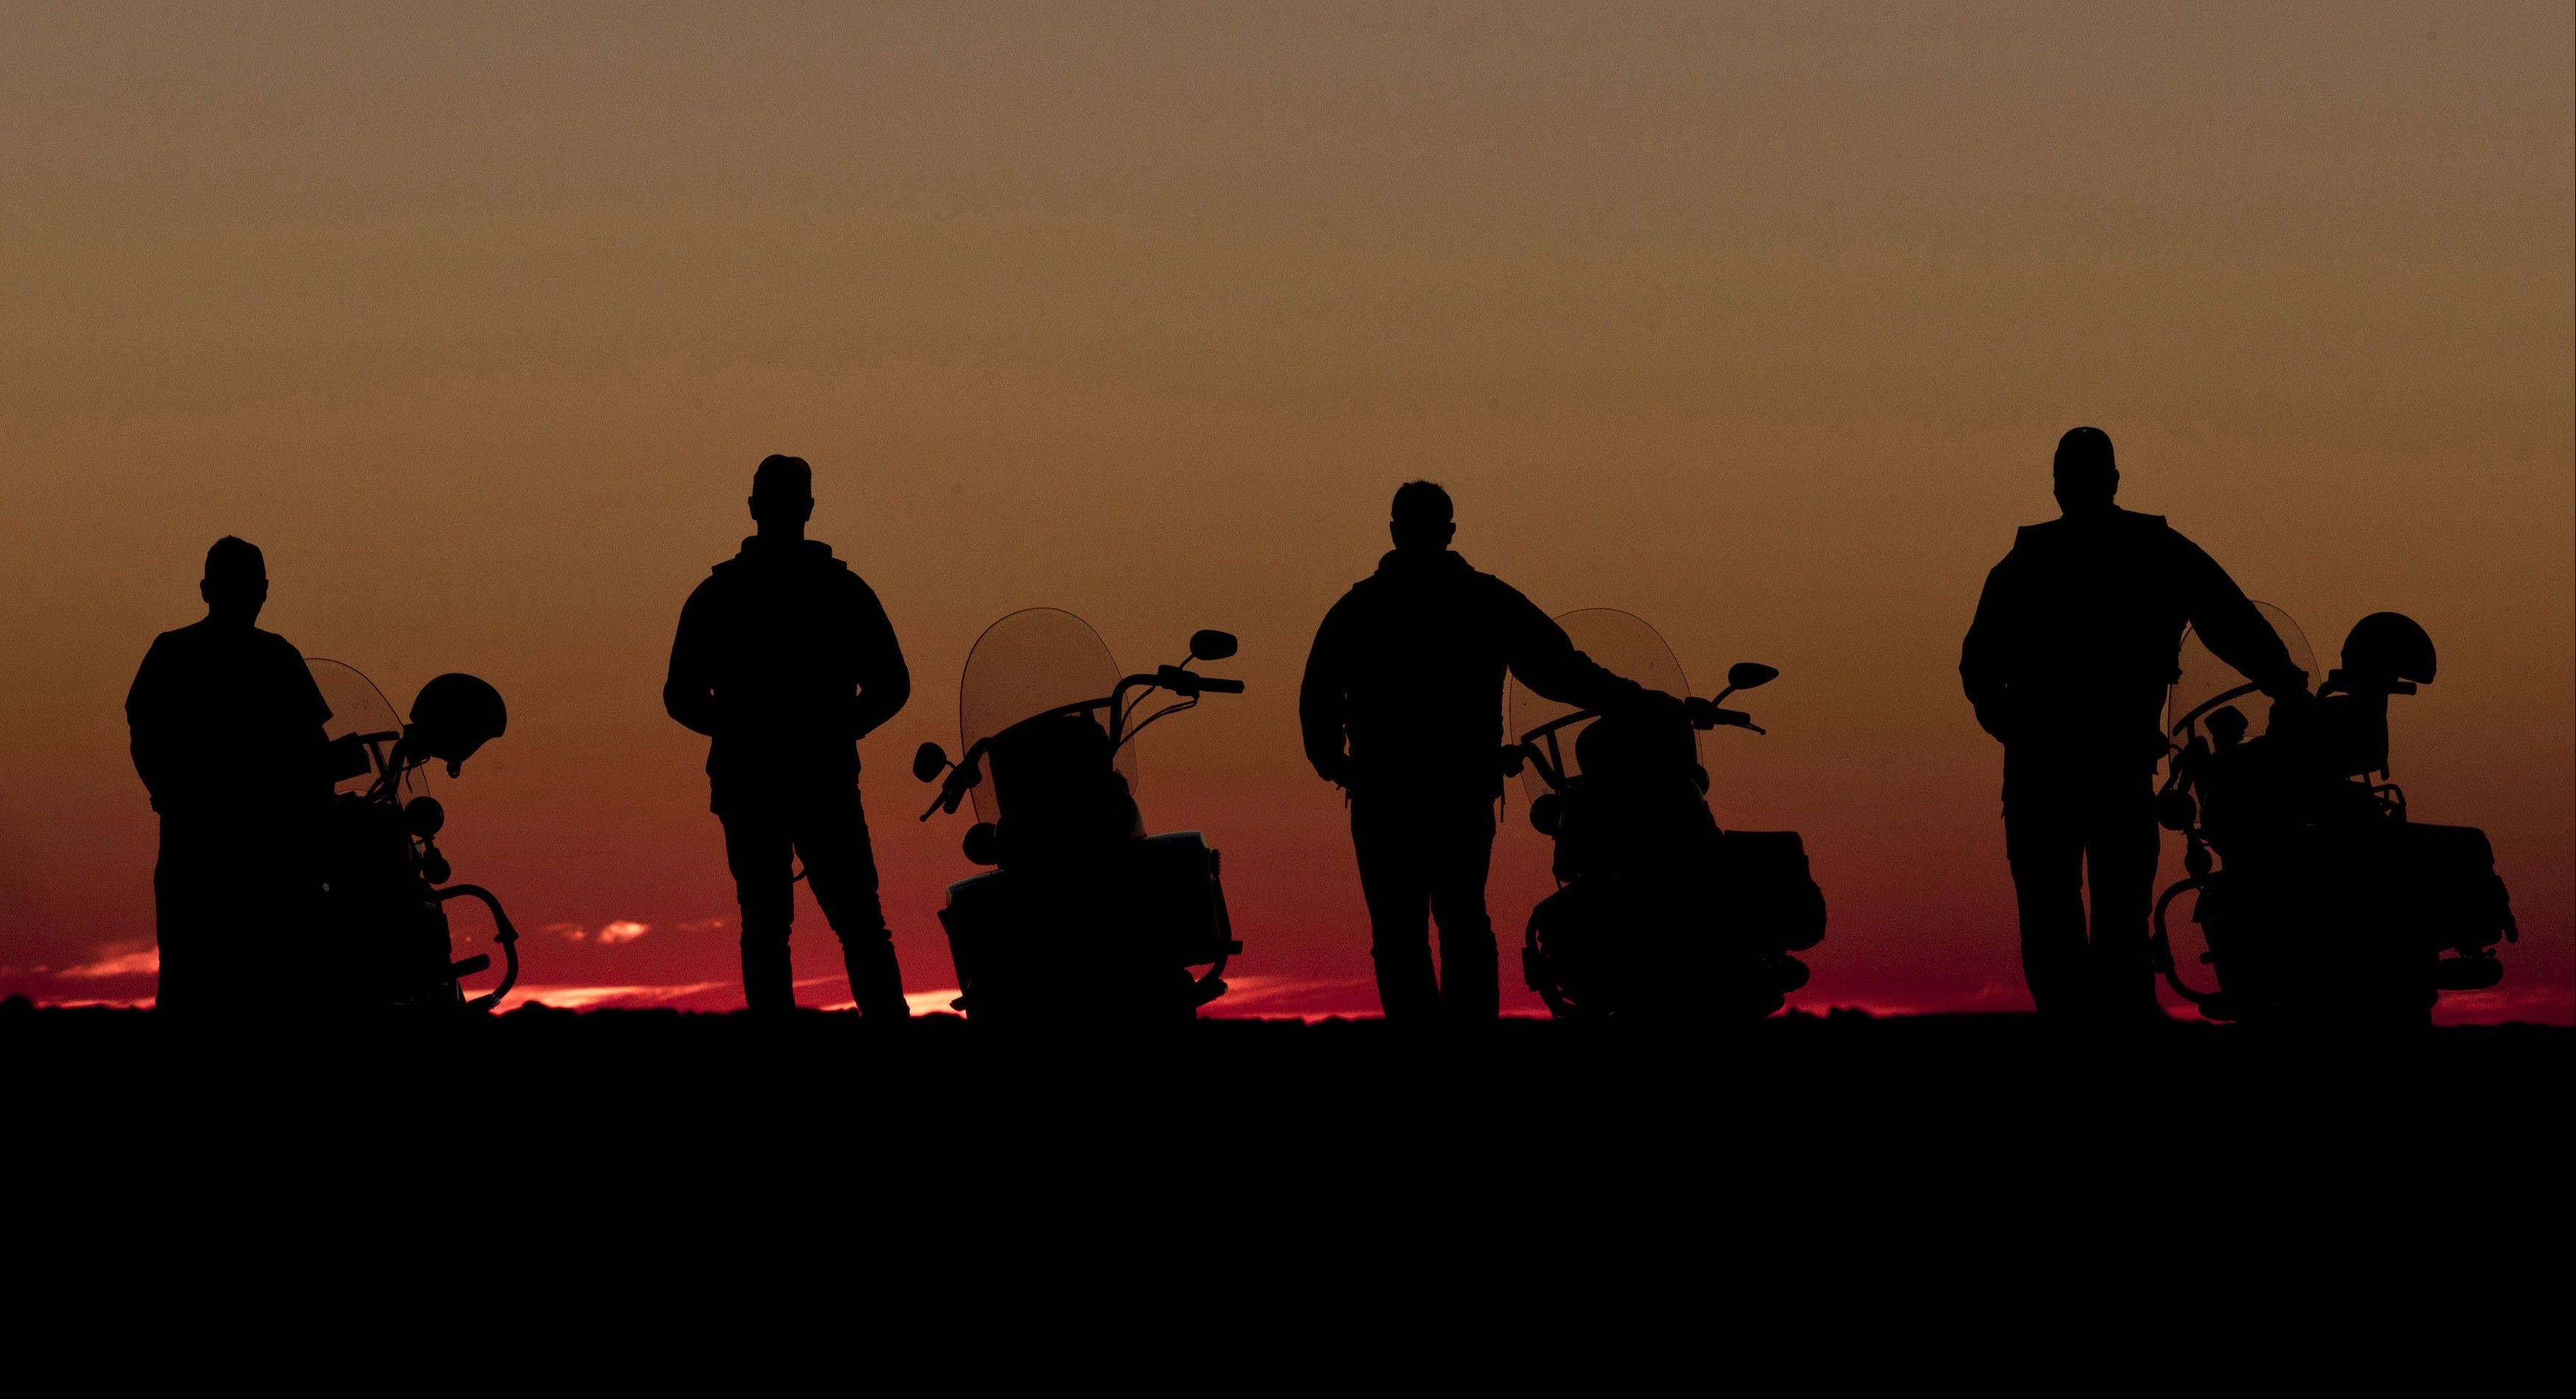 Four riders stand next to their motorcycles and watch the sun set near Broken Hill, Australia.